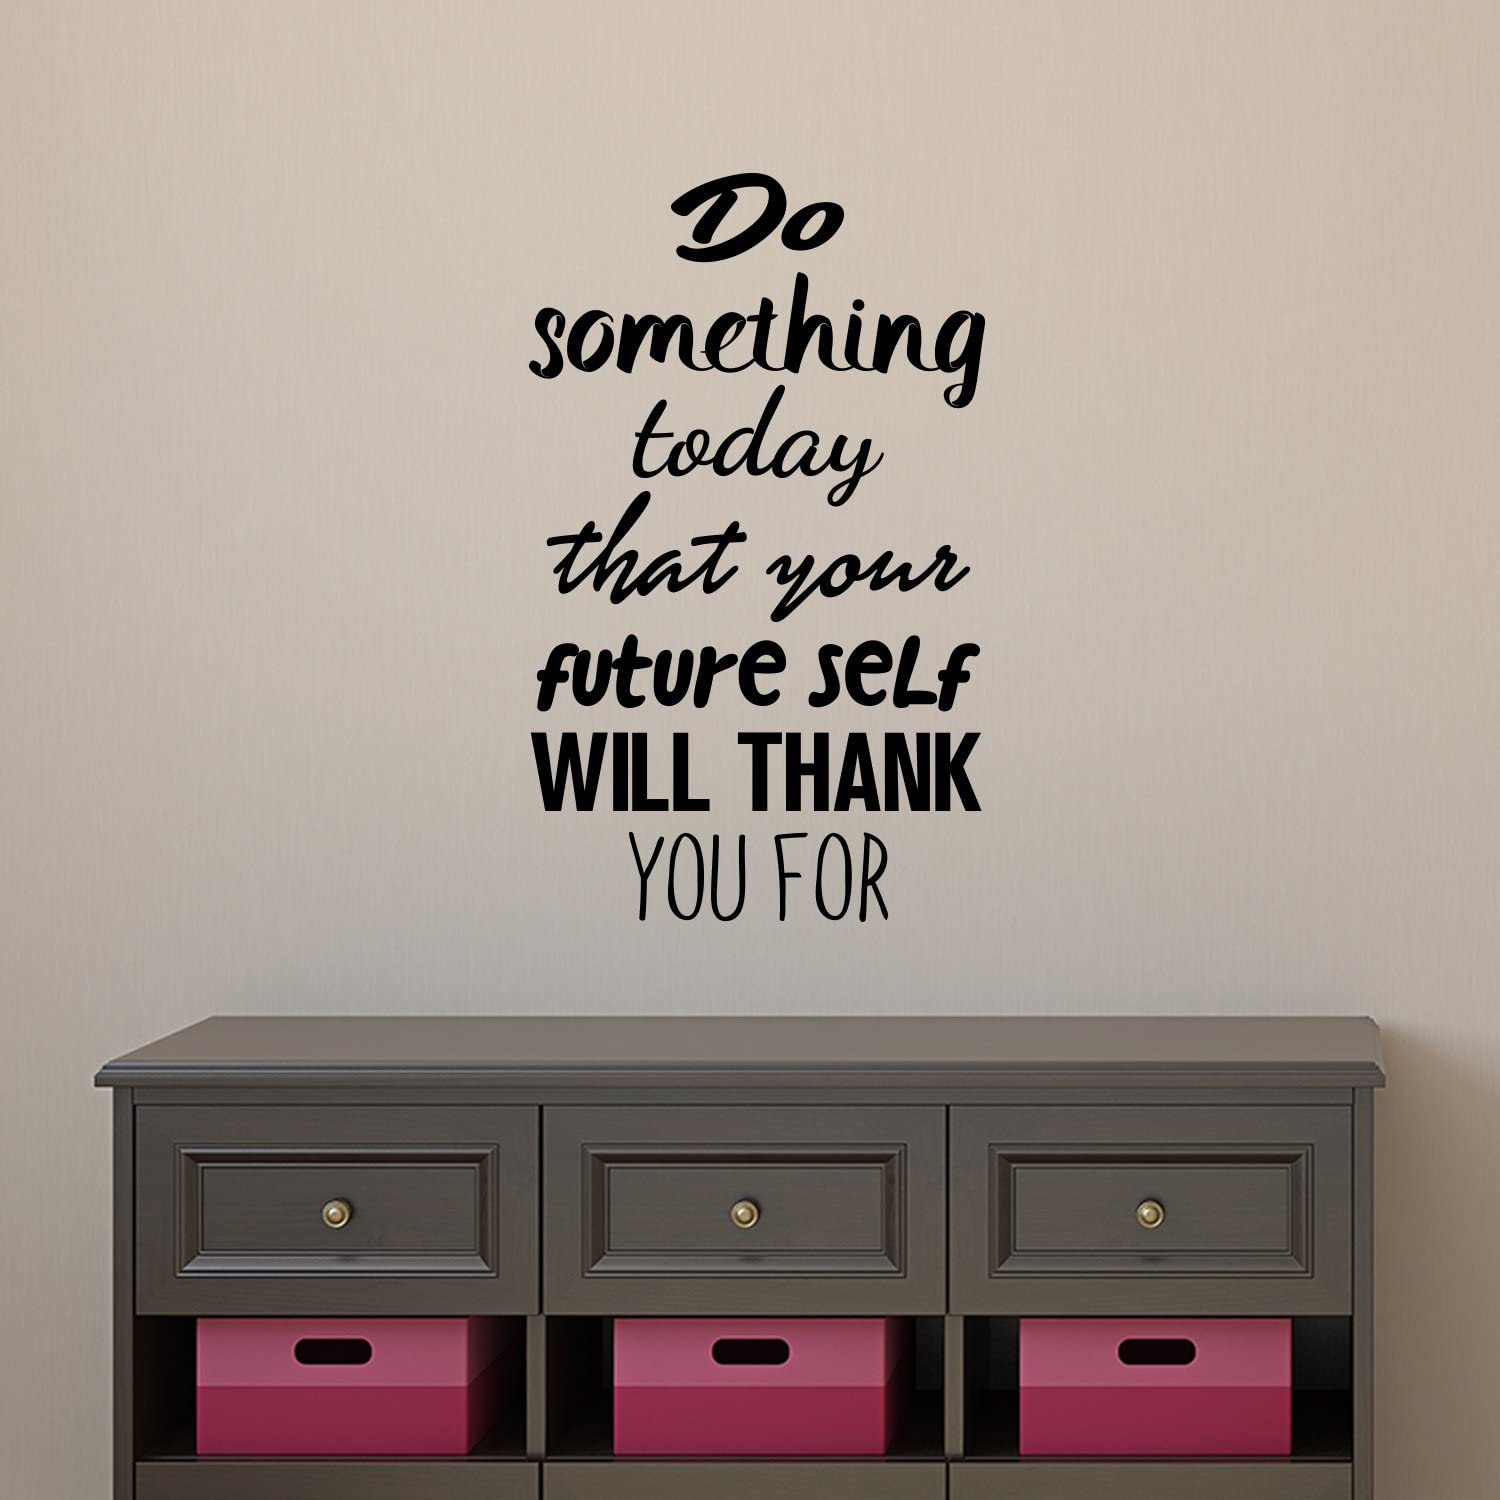 """Vinyl Wall Art Decal - Do Something Today That Your Future Self Will Thank You for - 23"""" x 14"""" - Modern Inspirational Quote Sticker for Home Bedroom Living Room Work Office Coffee Shop Store Decor"""